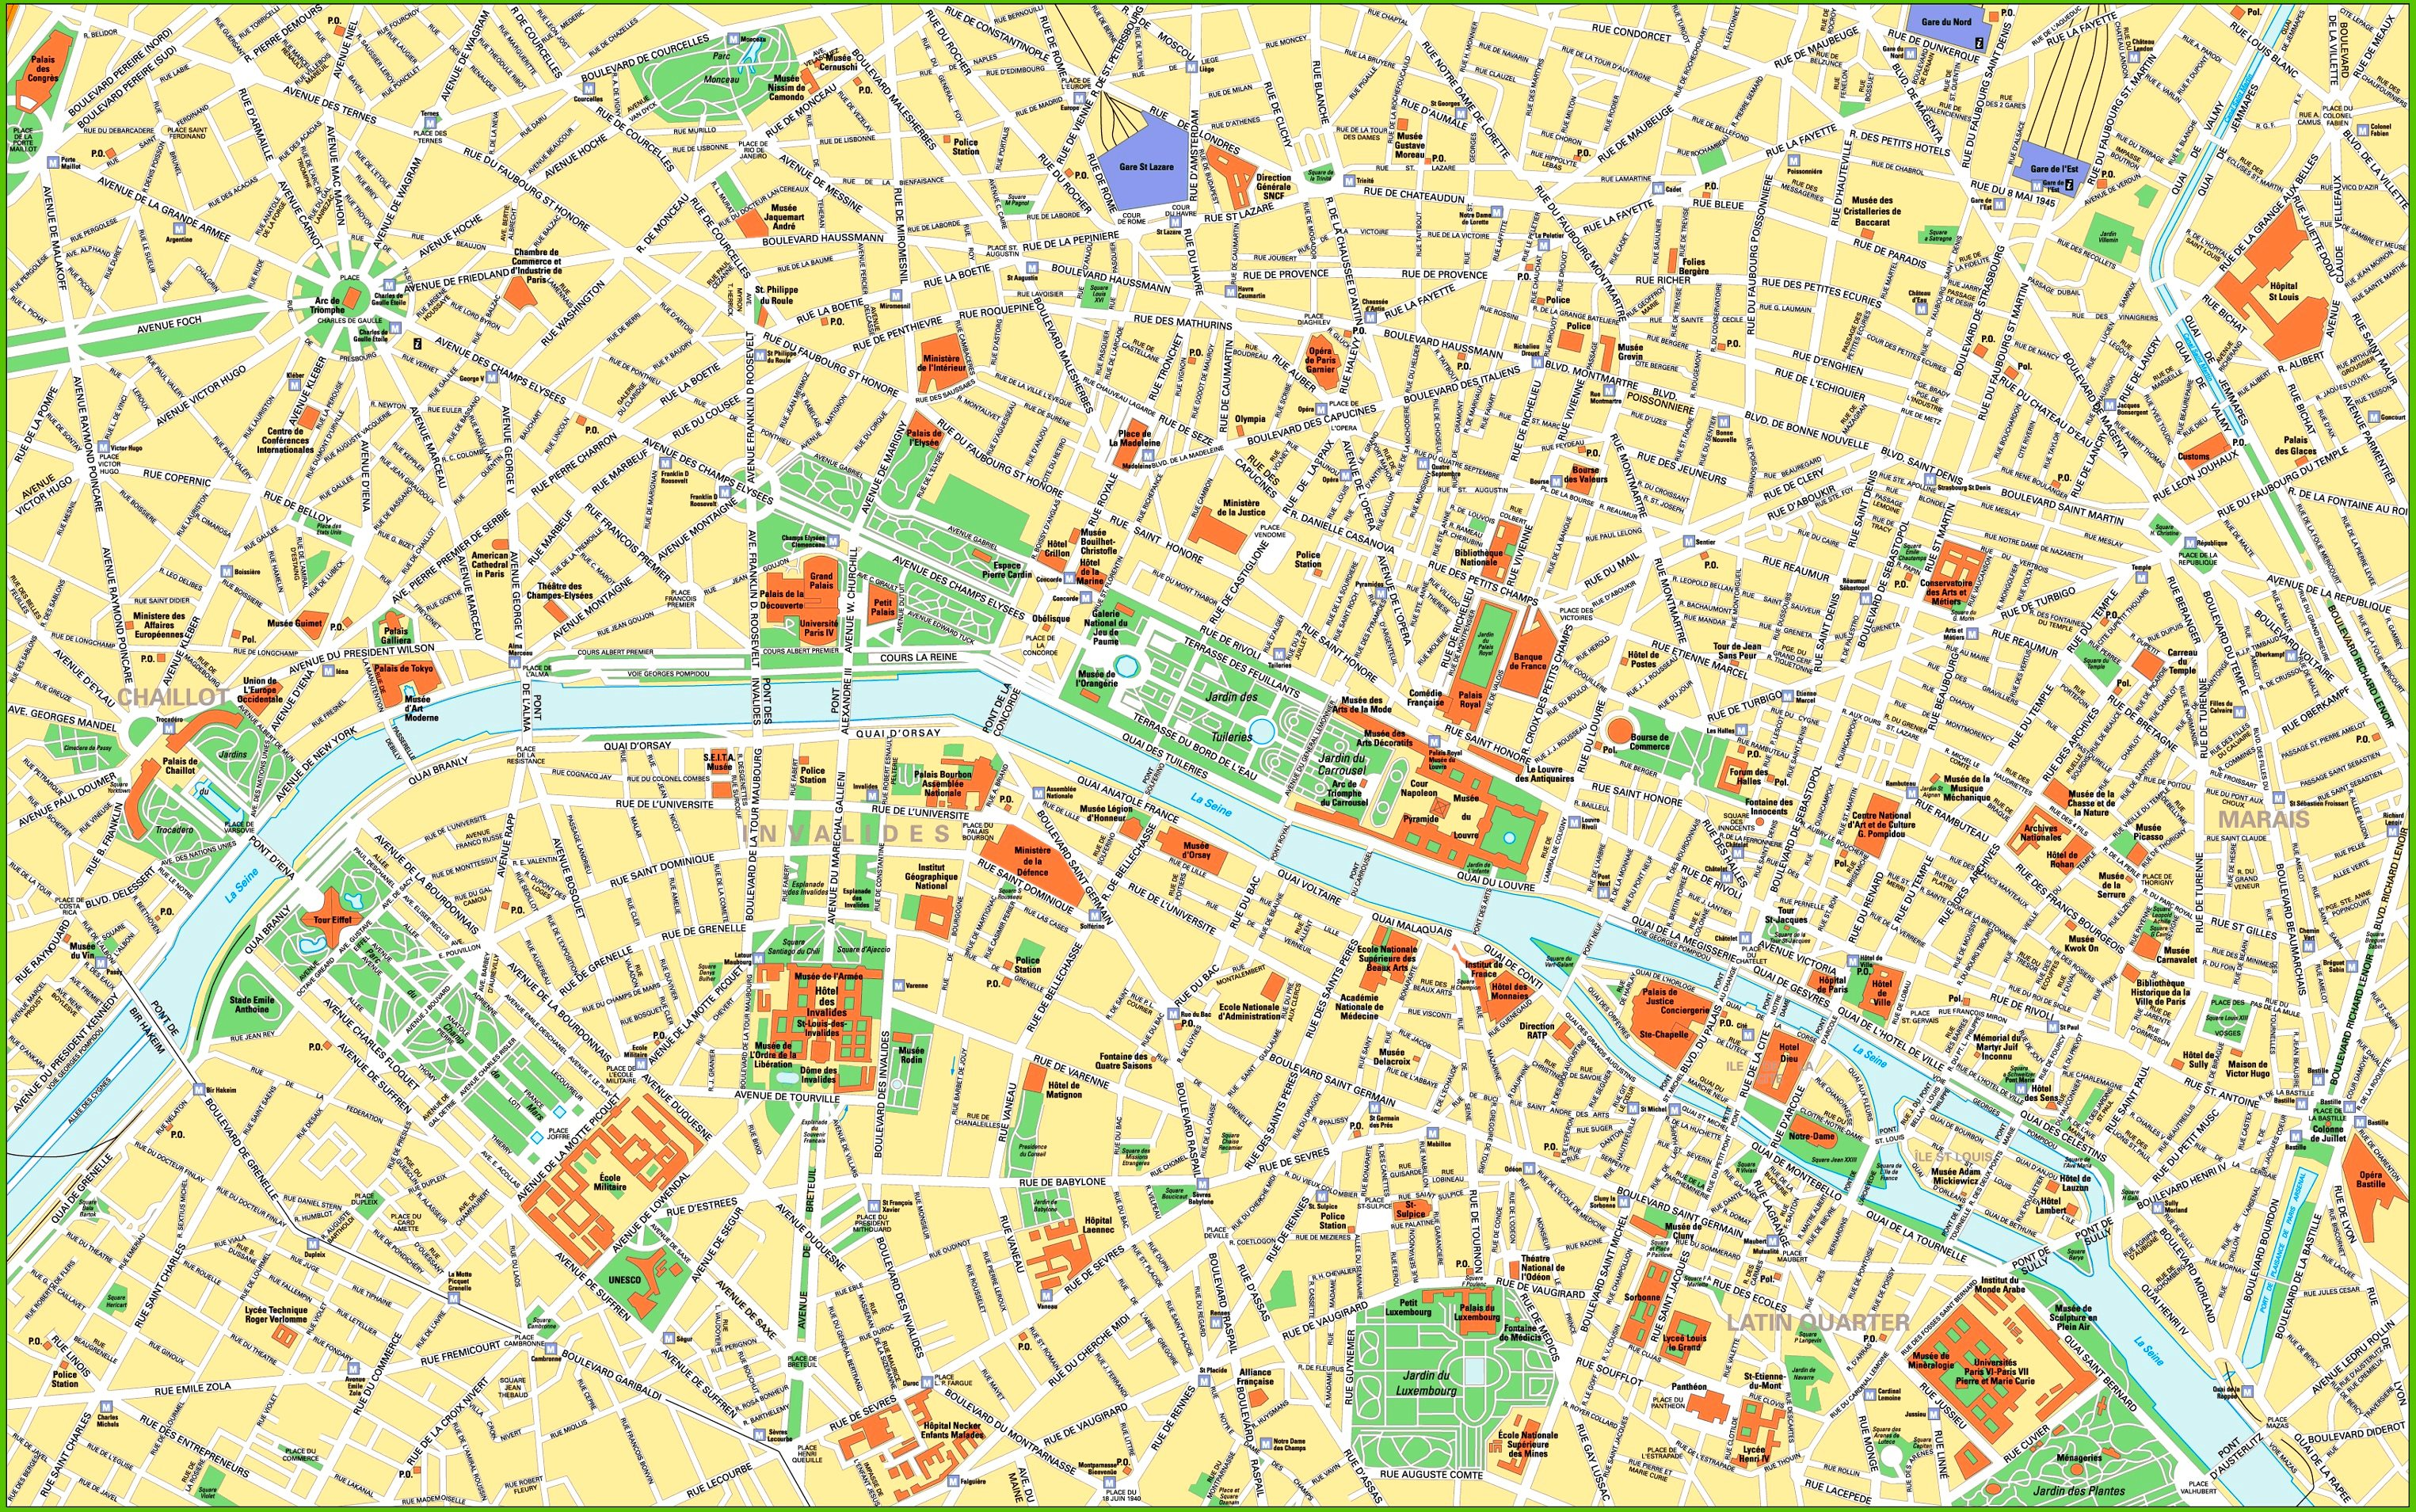 Paris city centre map with tourist attractions and sightseeings